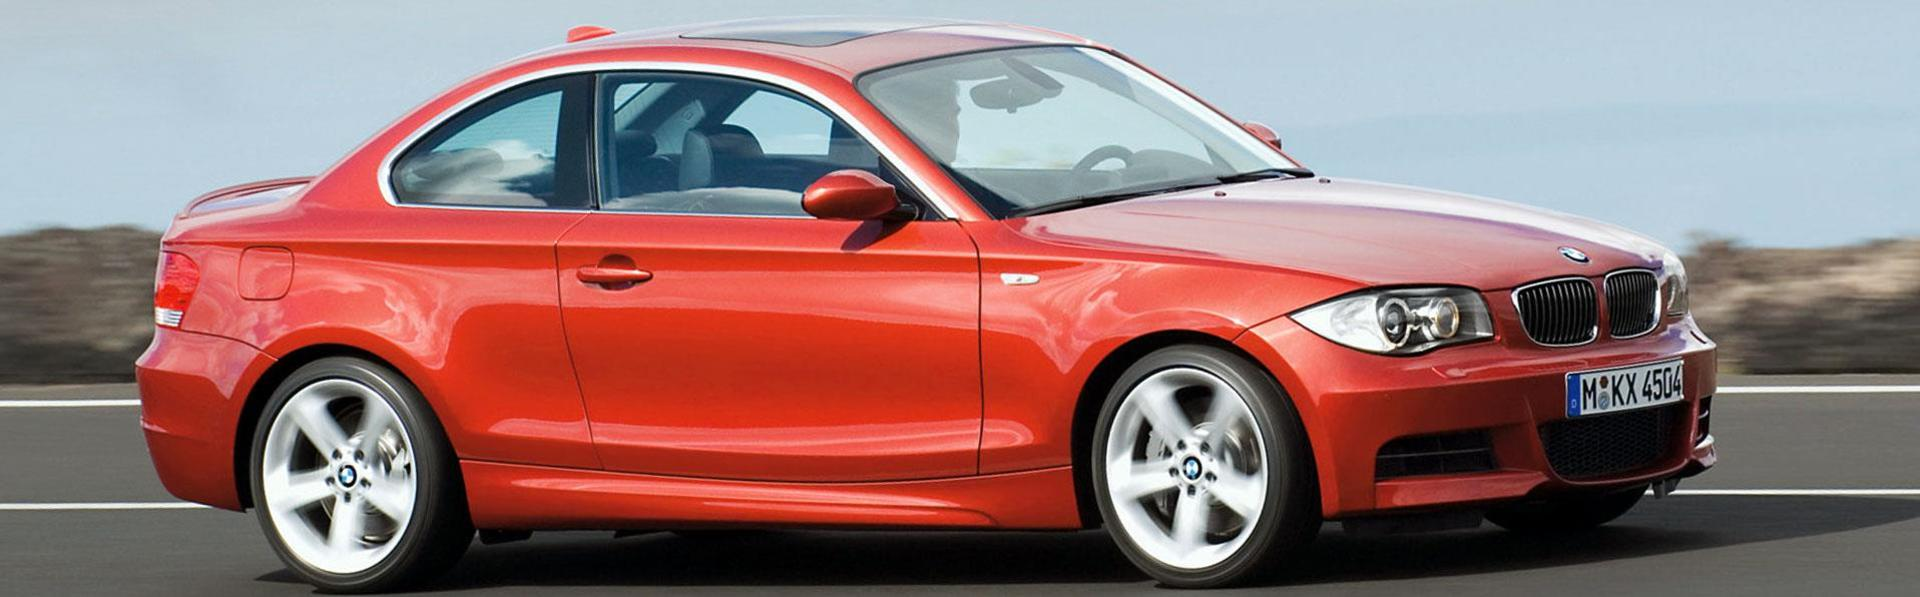 Used Cars Knoxville | Used Car Dealer Knoxville | Metro